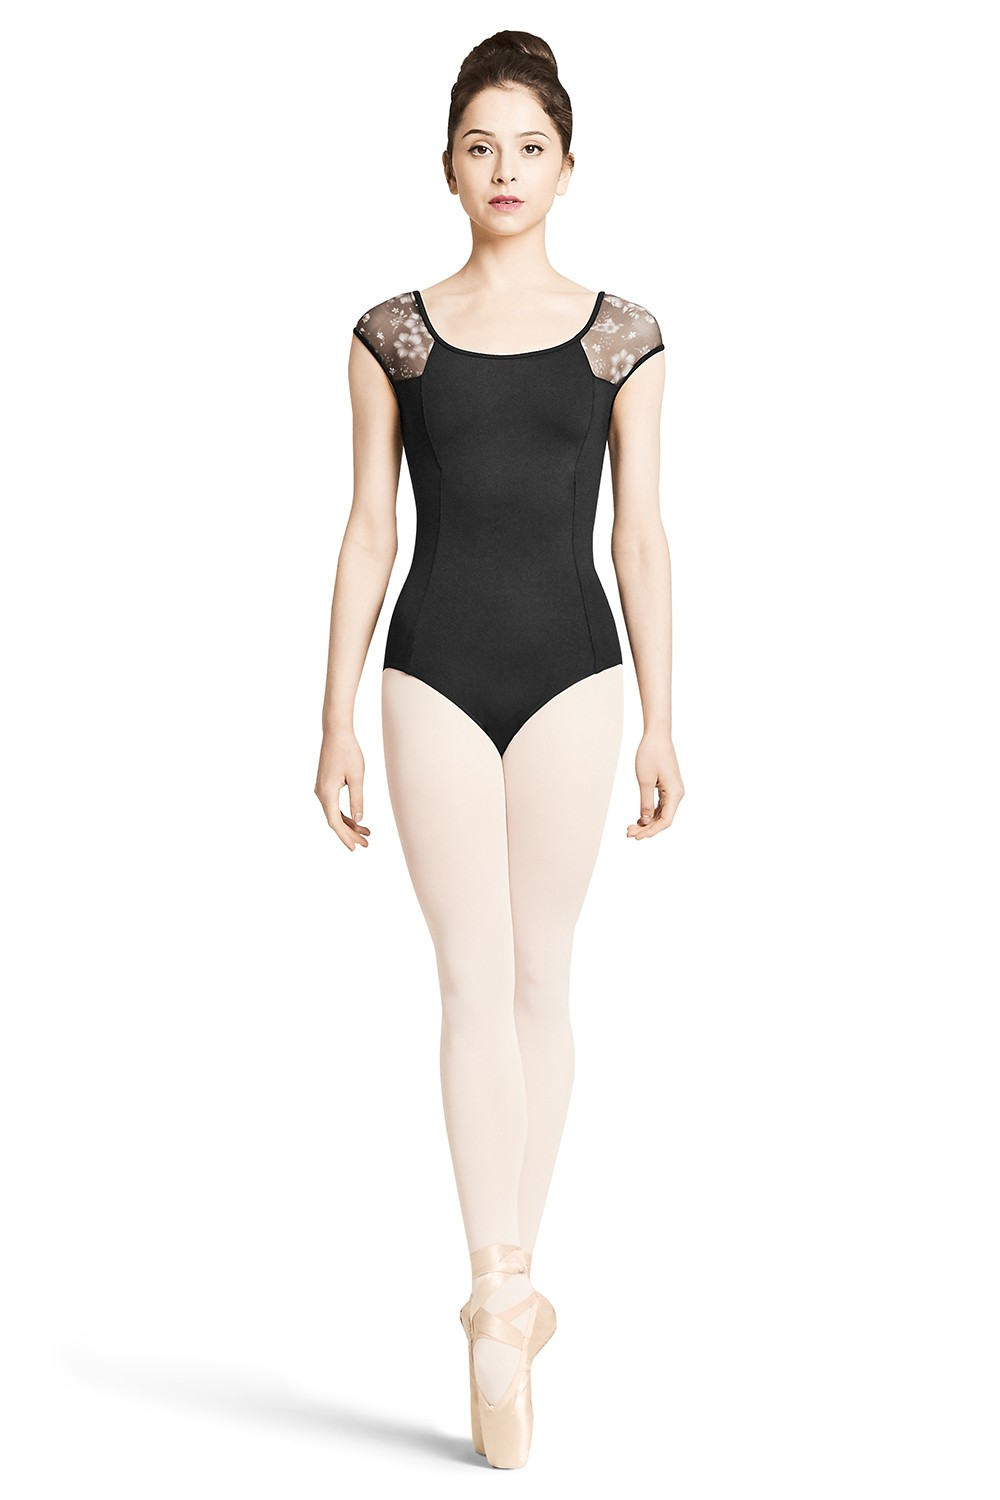 Floral Mesh Cap Sleeve Women's Dance Leotards